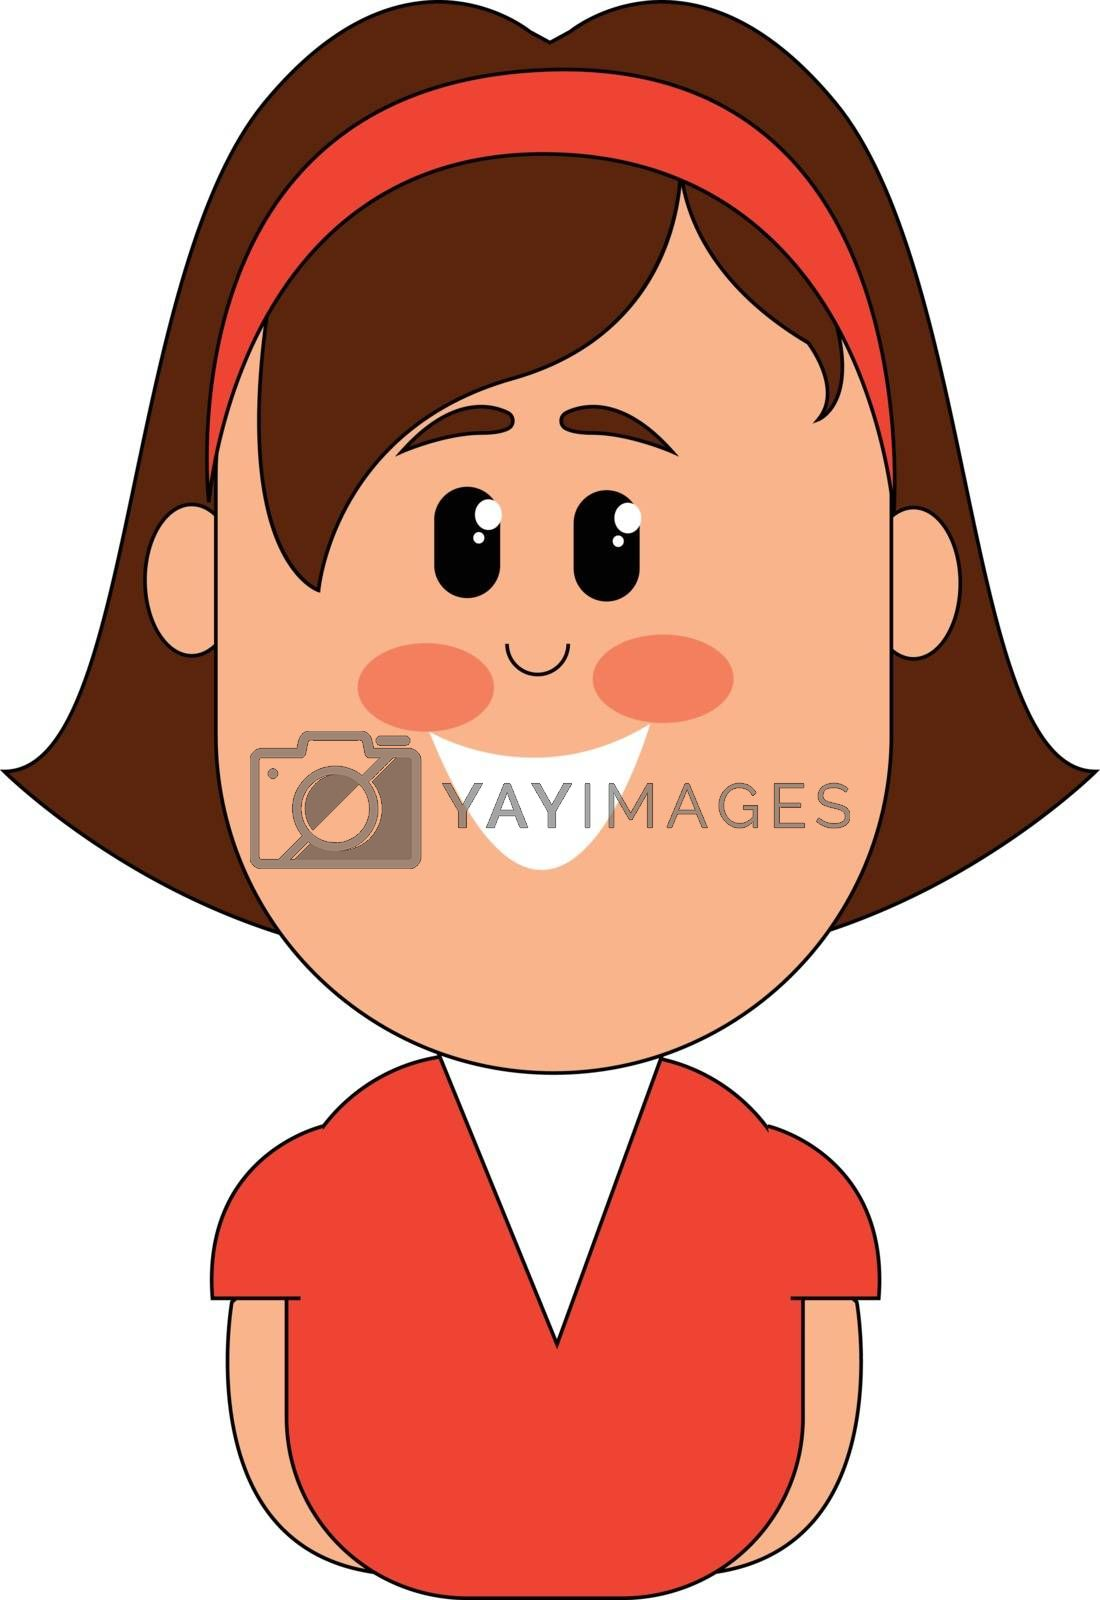 Royalty free image of Clipart of a smiling small girl  vector or color illustration by Morphart